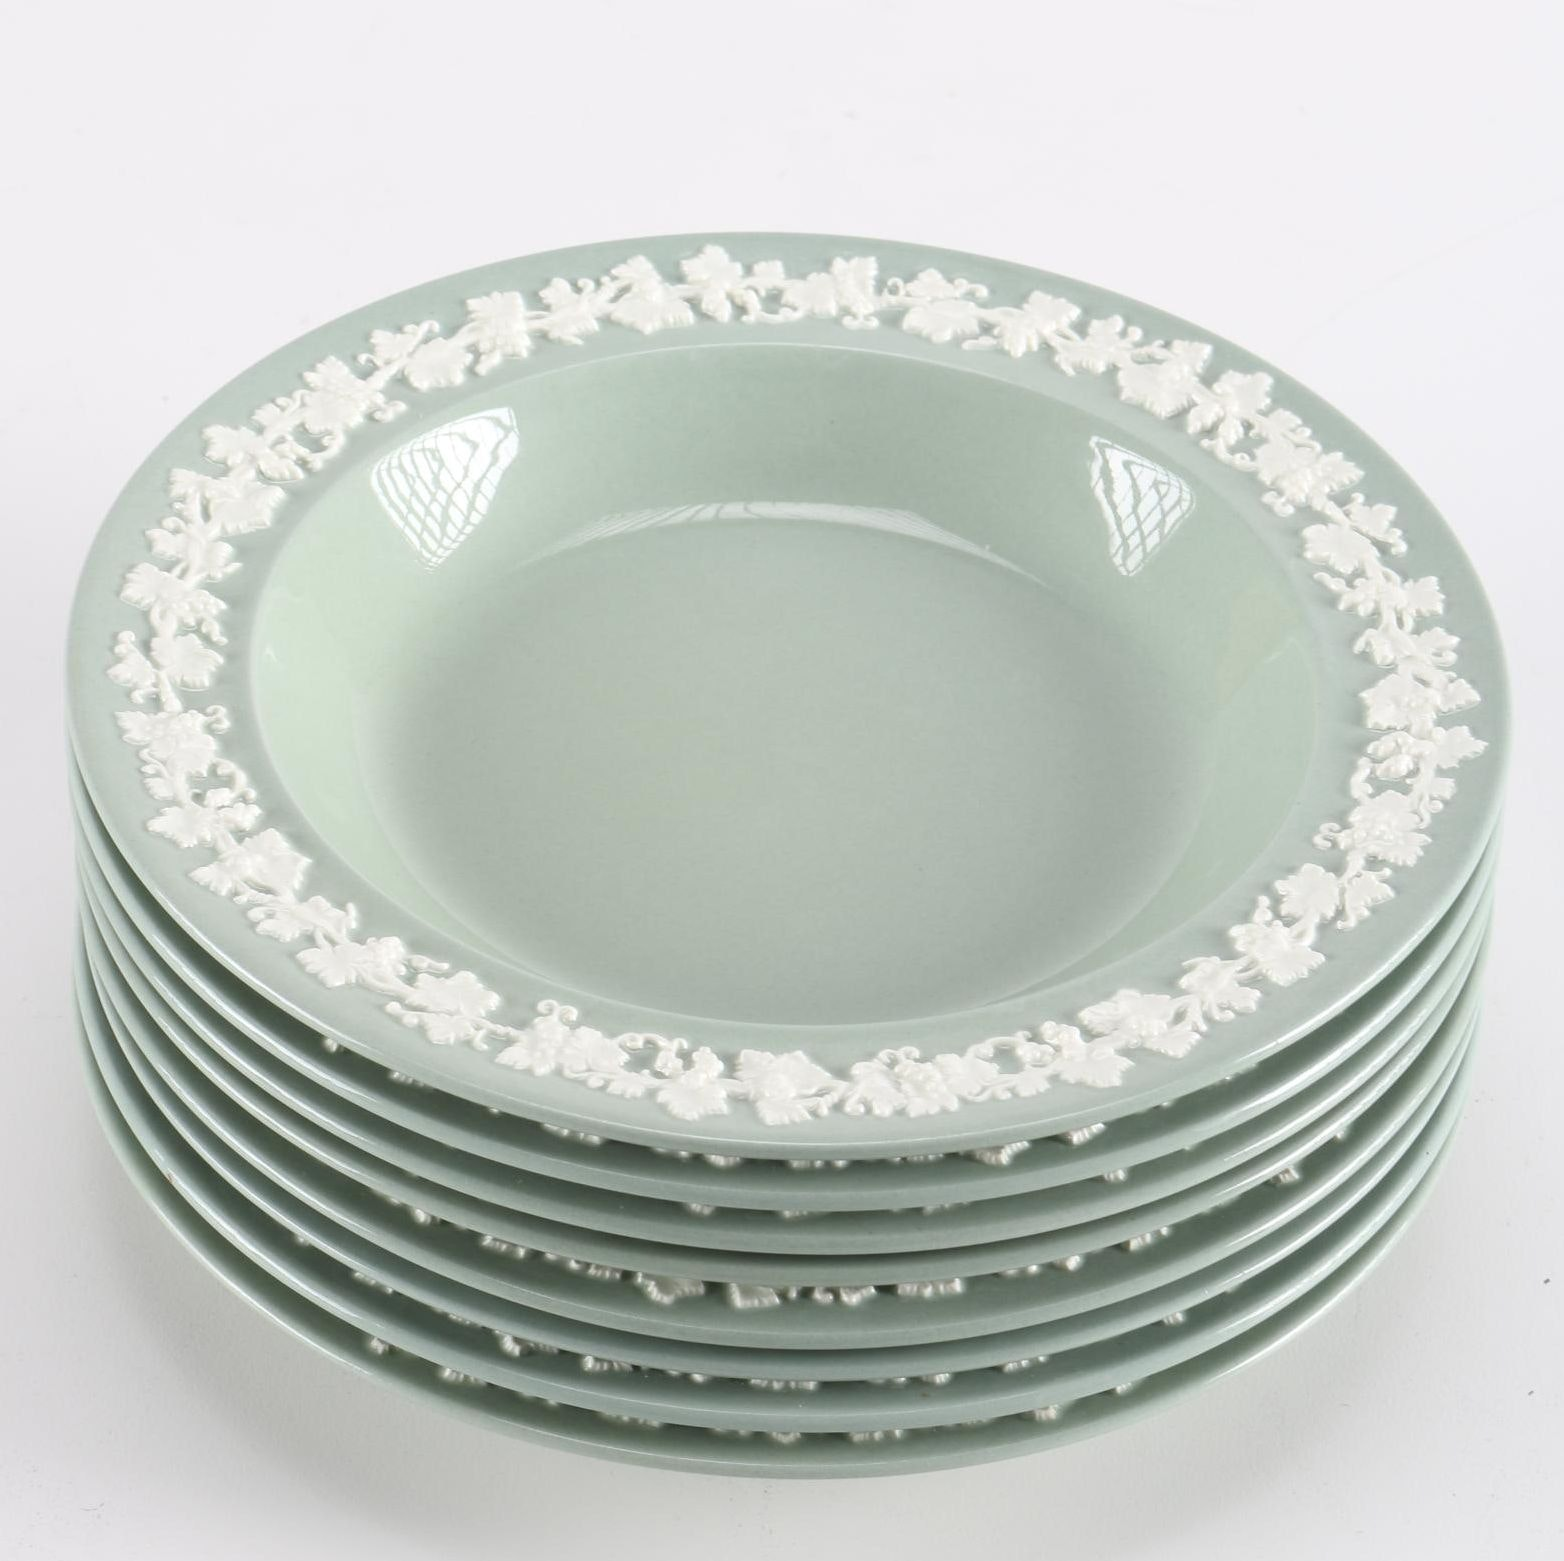 """Wedgwood """"Cream Color on Gray"""" Embossed Dishes"""